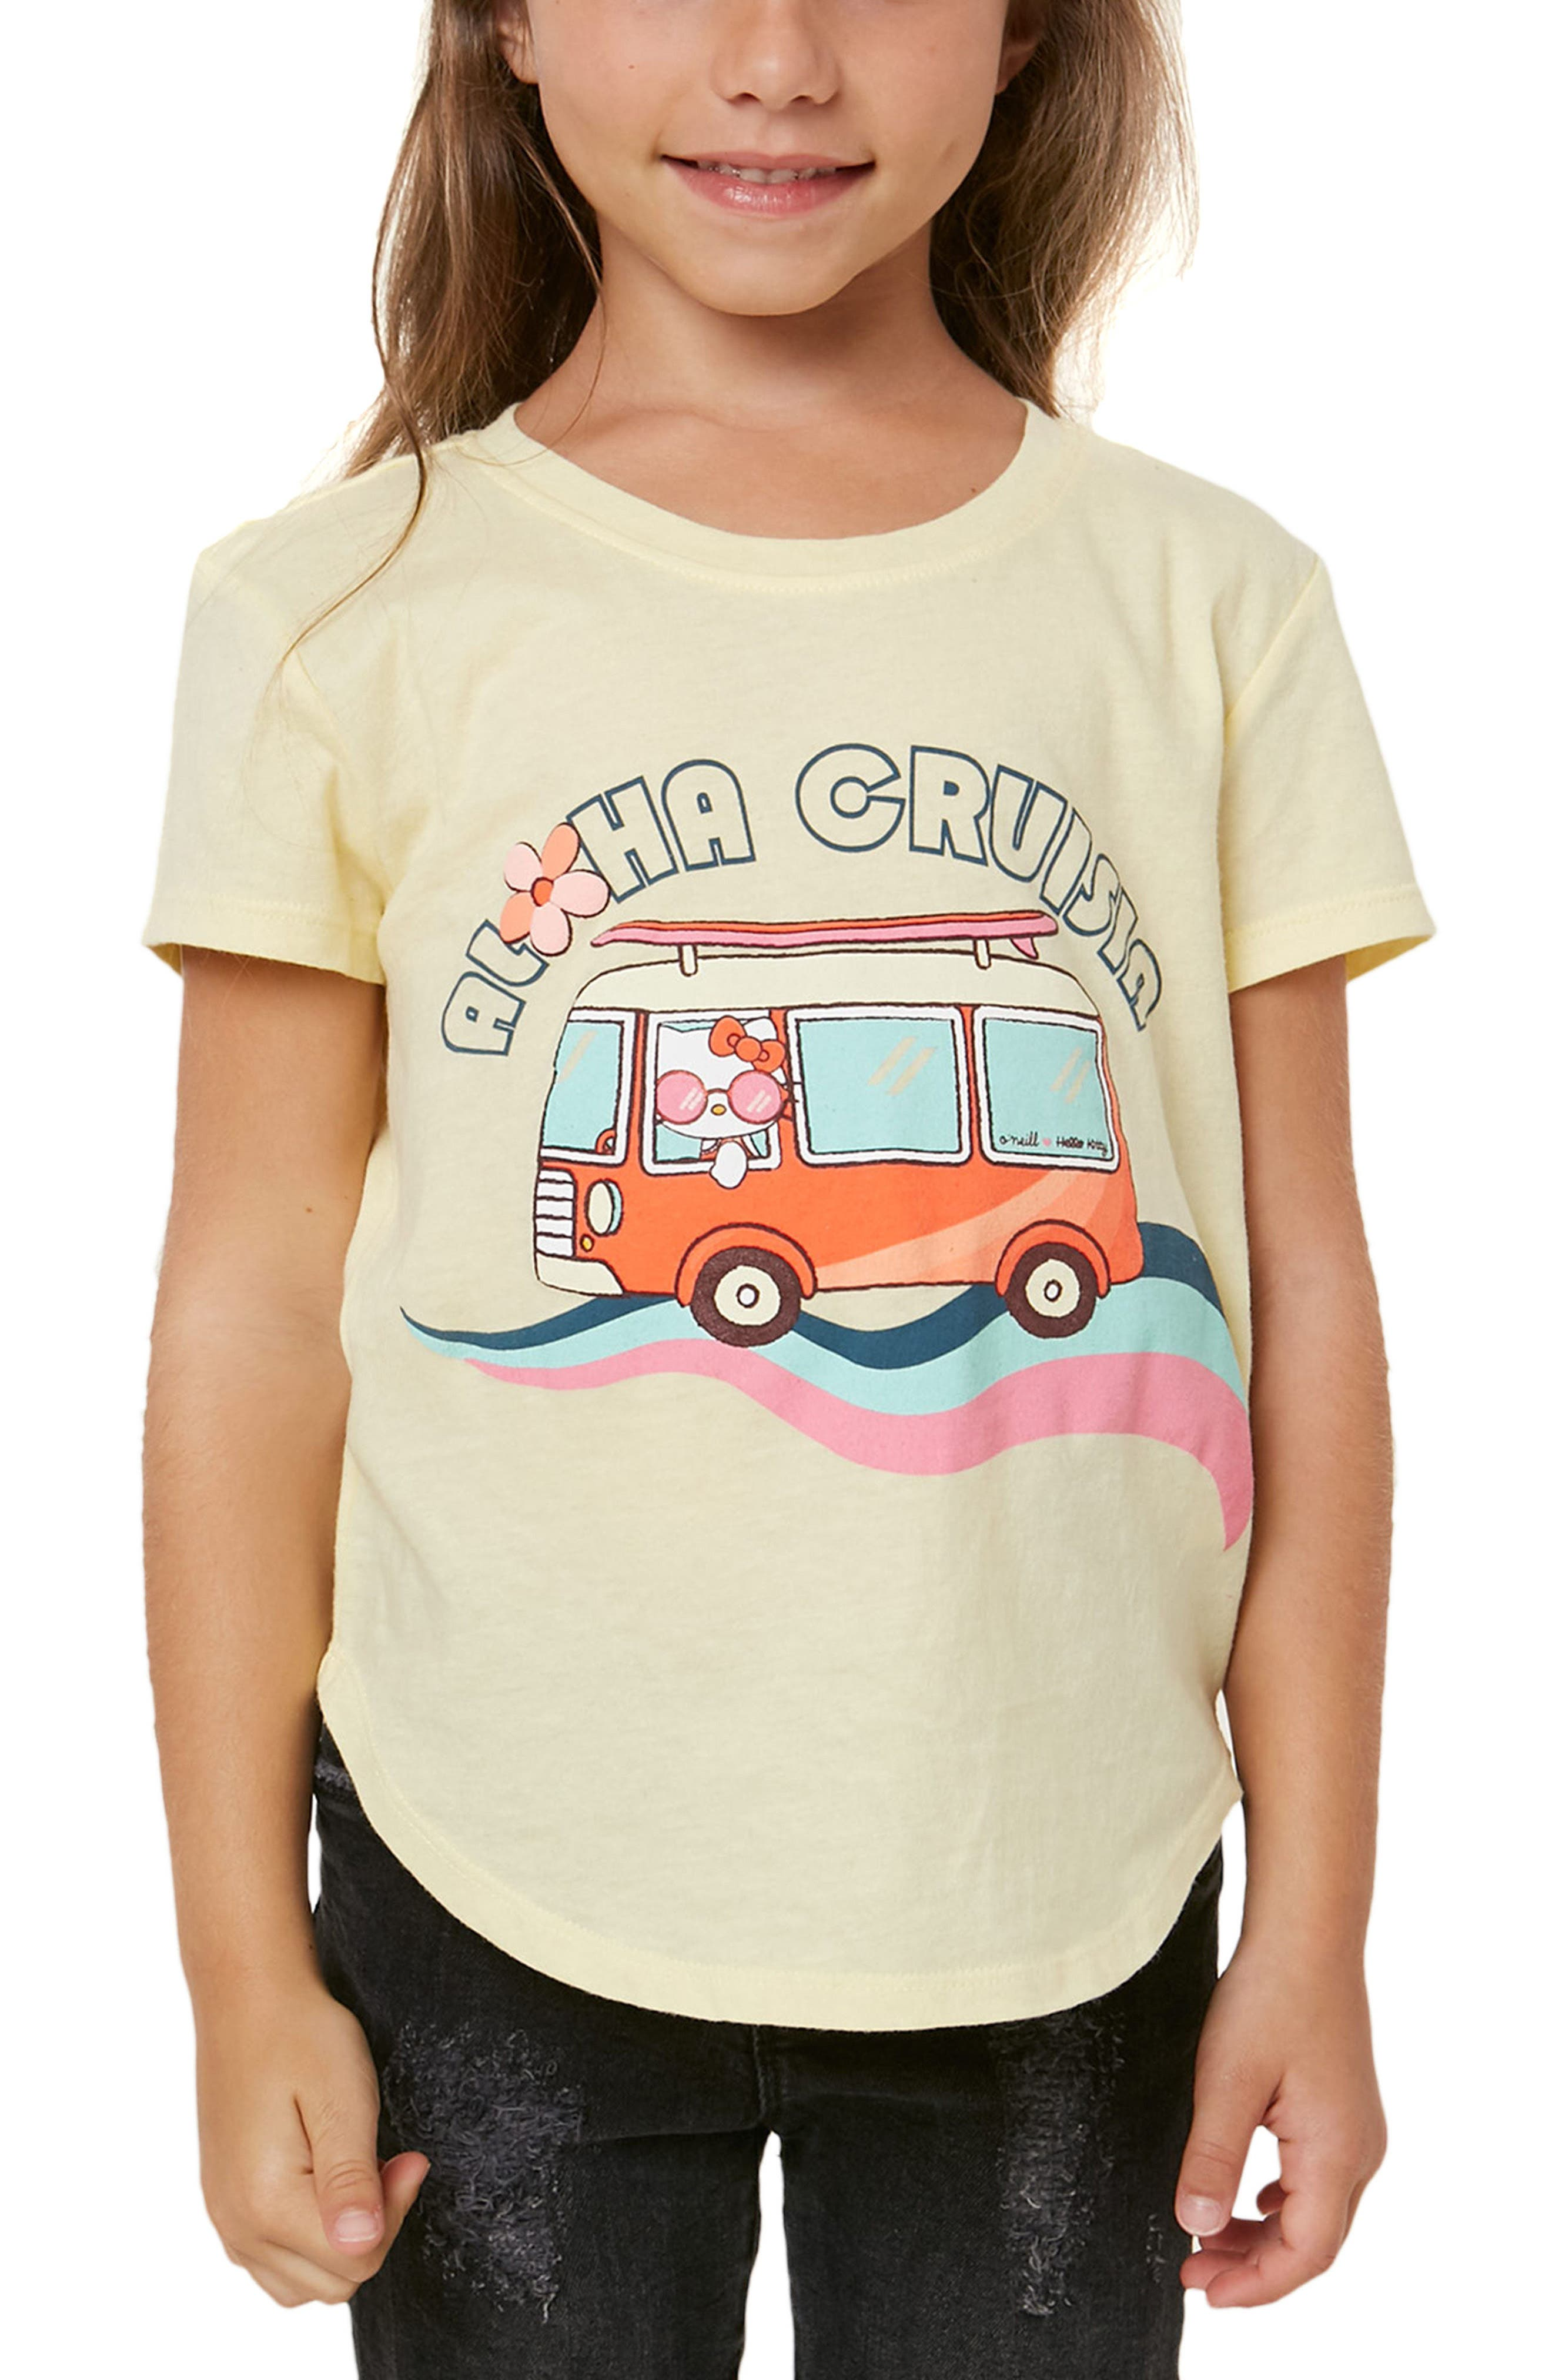 x Hello Kitty<sup>®</sup> Aloha Cruisin Graphic Tee,                             Alternate thumbnail 2, color,                             700